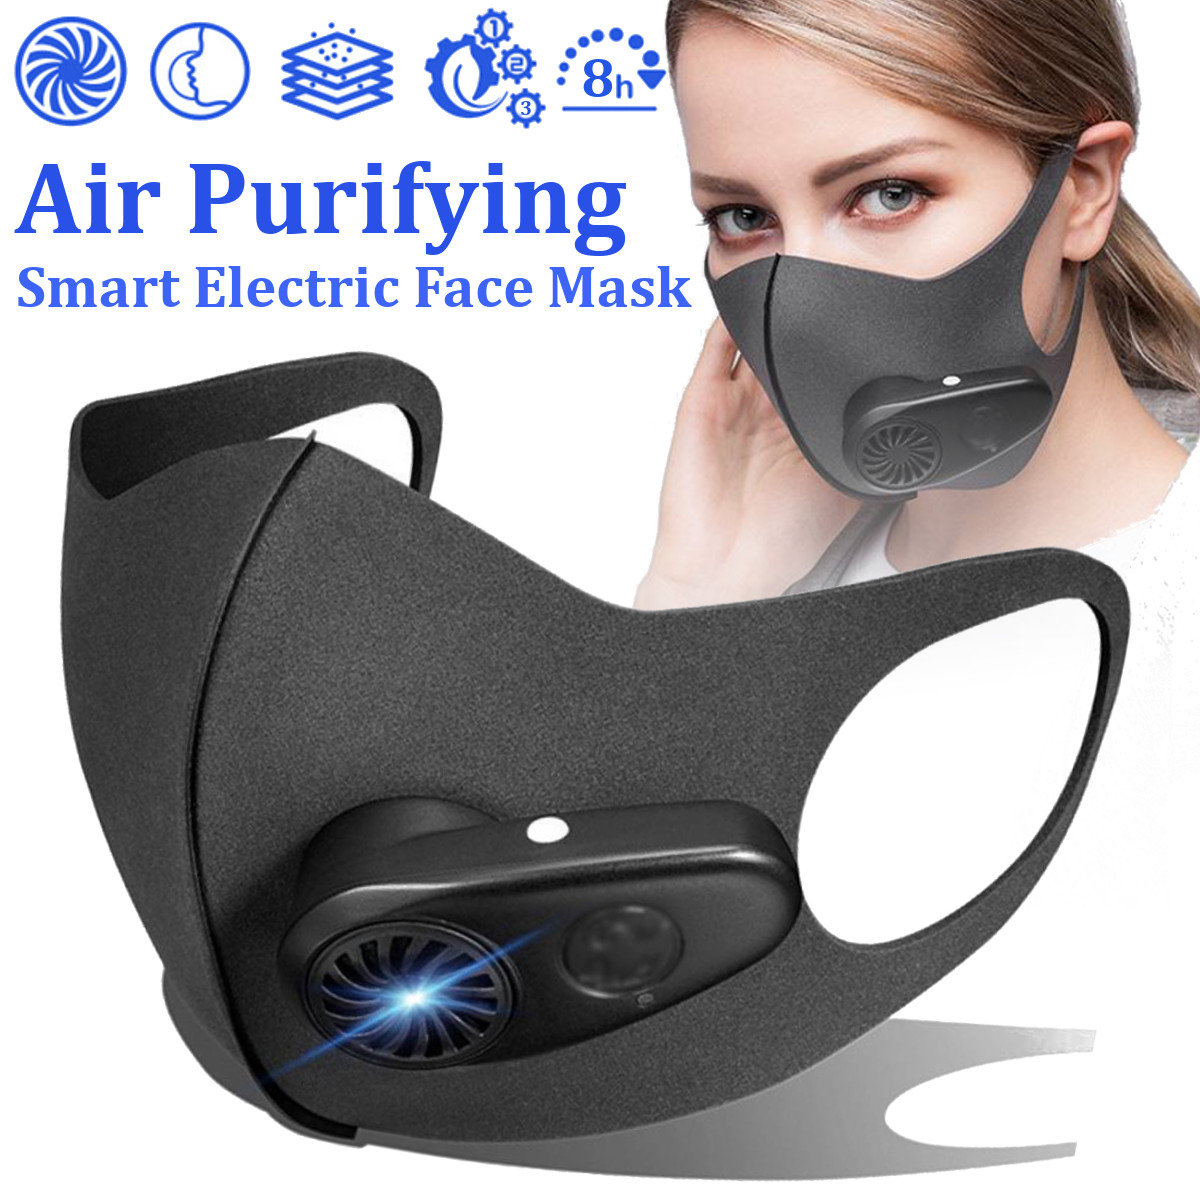 Smart Electric Face Mask Air Purifying Anti Dust Pollution Fresh Air Supply Pm2.5 With Breathing Valve Personal Health Car